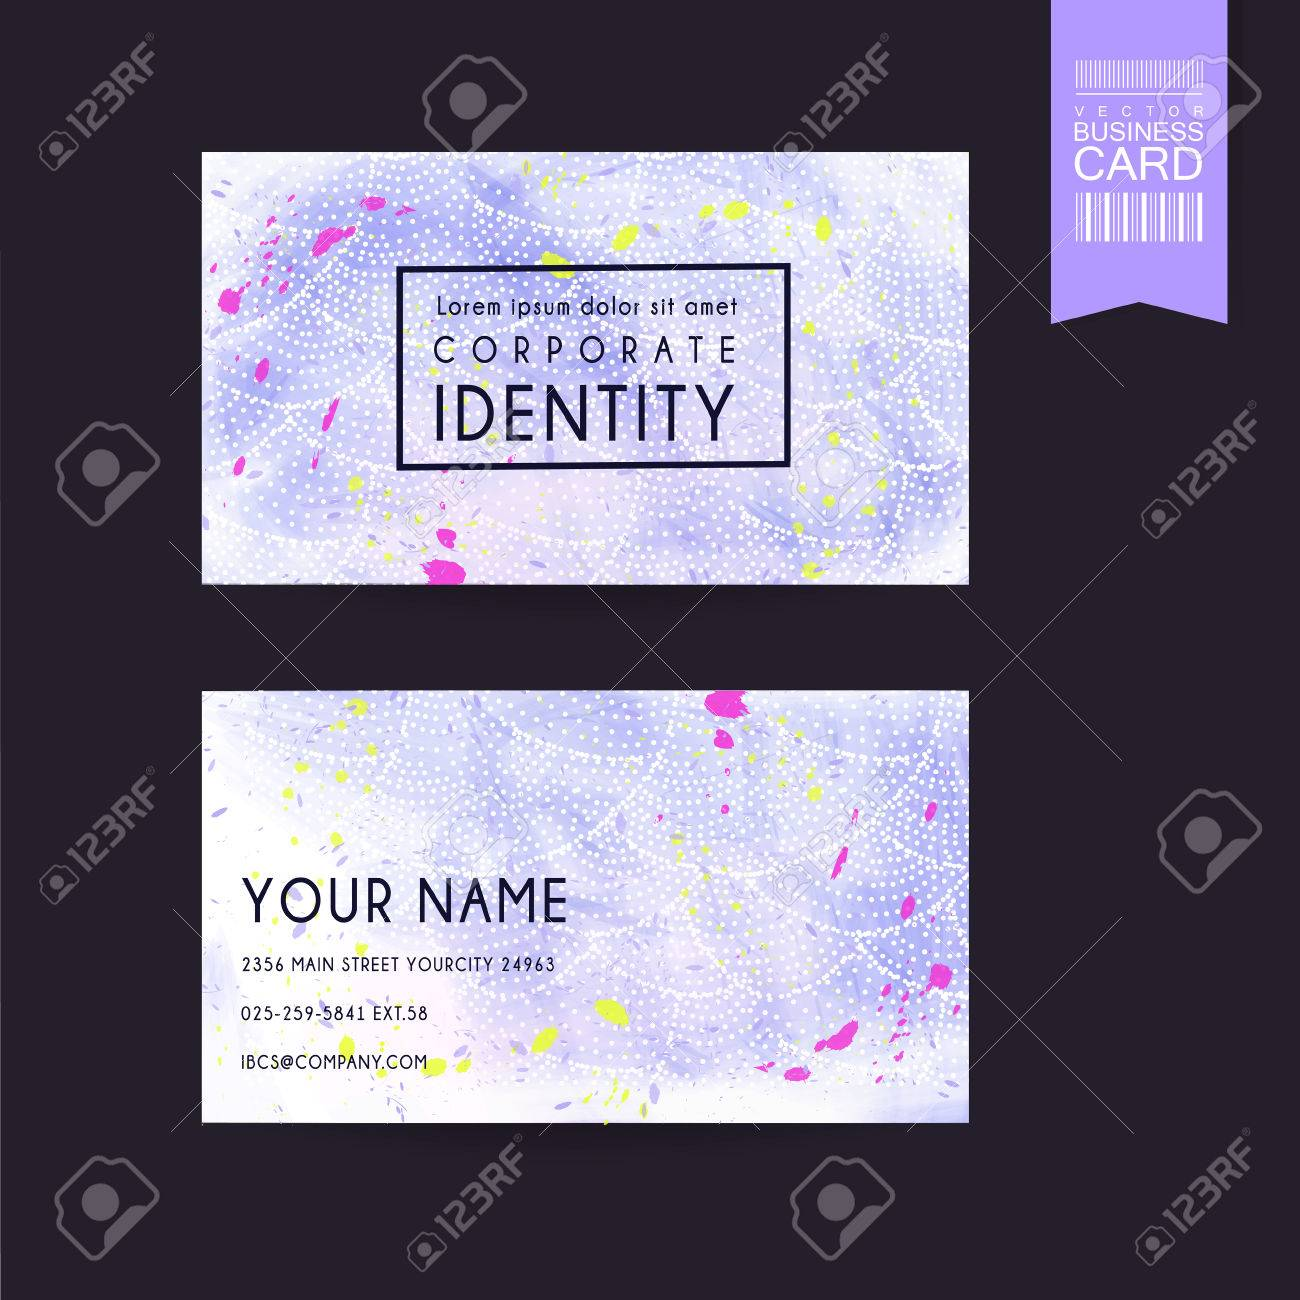 Adorable purple business card template design with colorful stained adorable purple business card template design with colorful stained stock vector 37966787 reheart Gallery